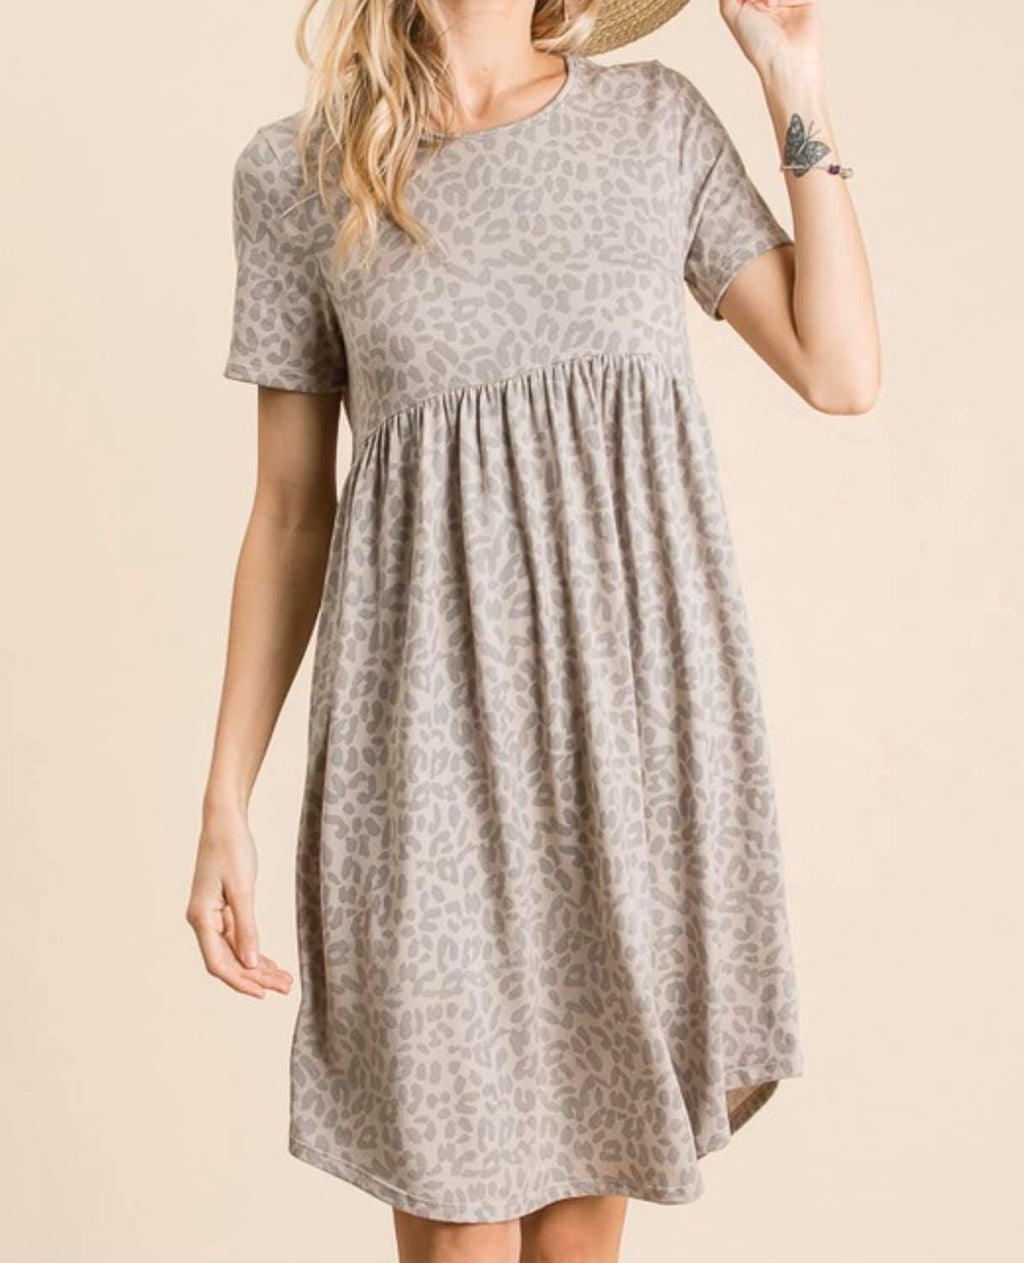 Distressed Leopard Babydoll Dress in Taupe